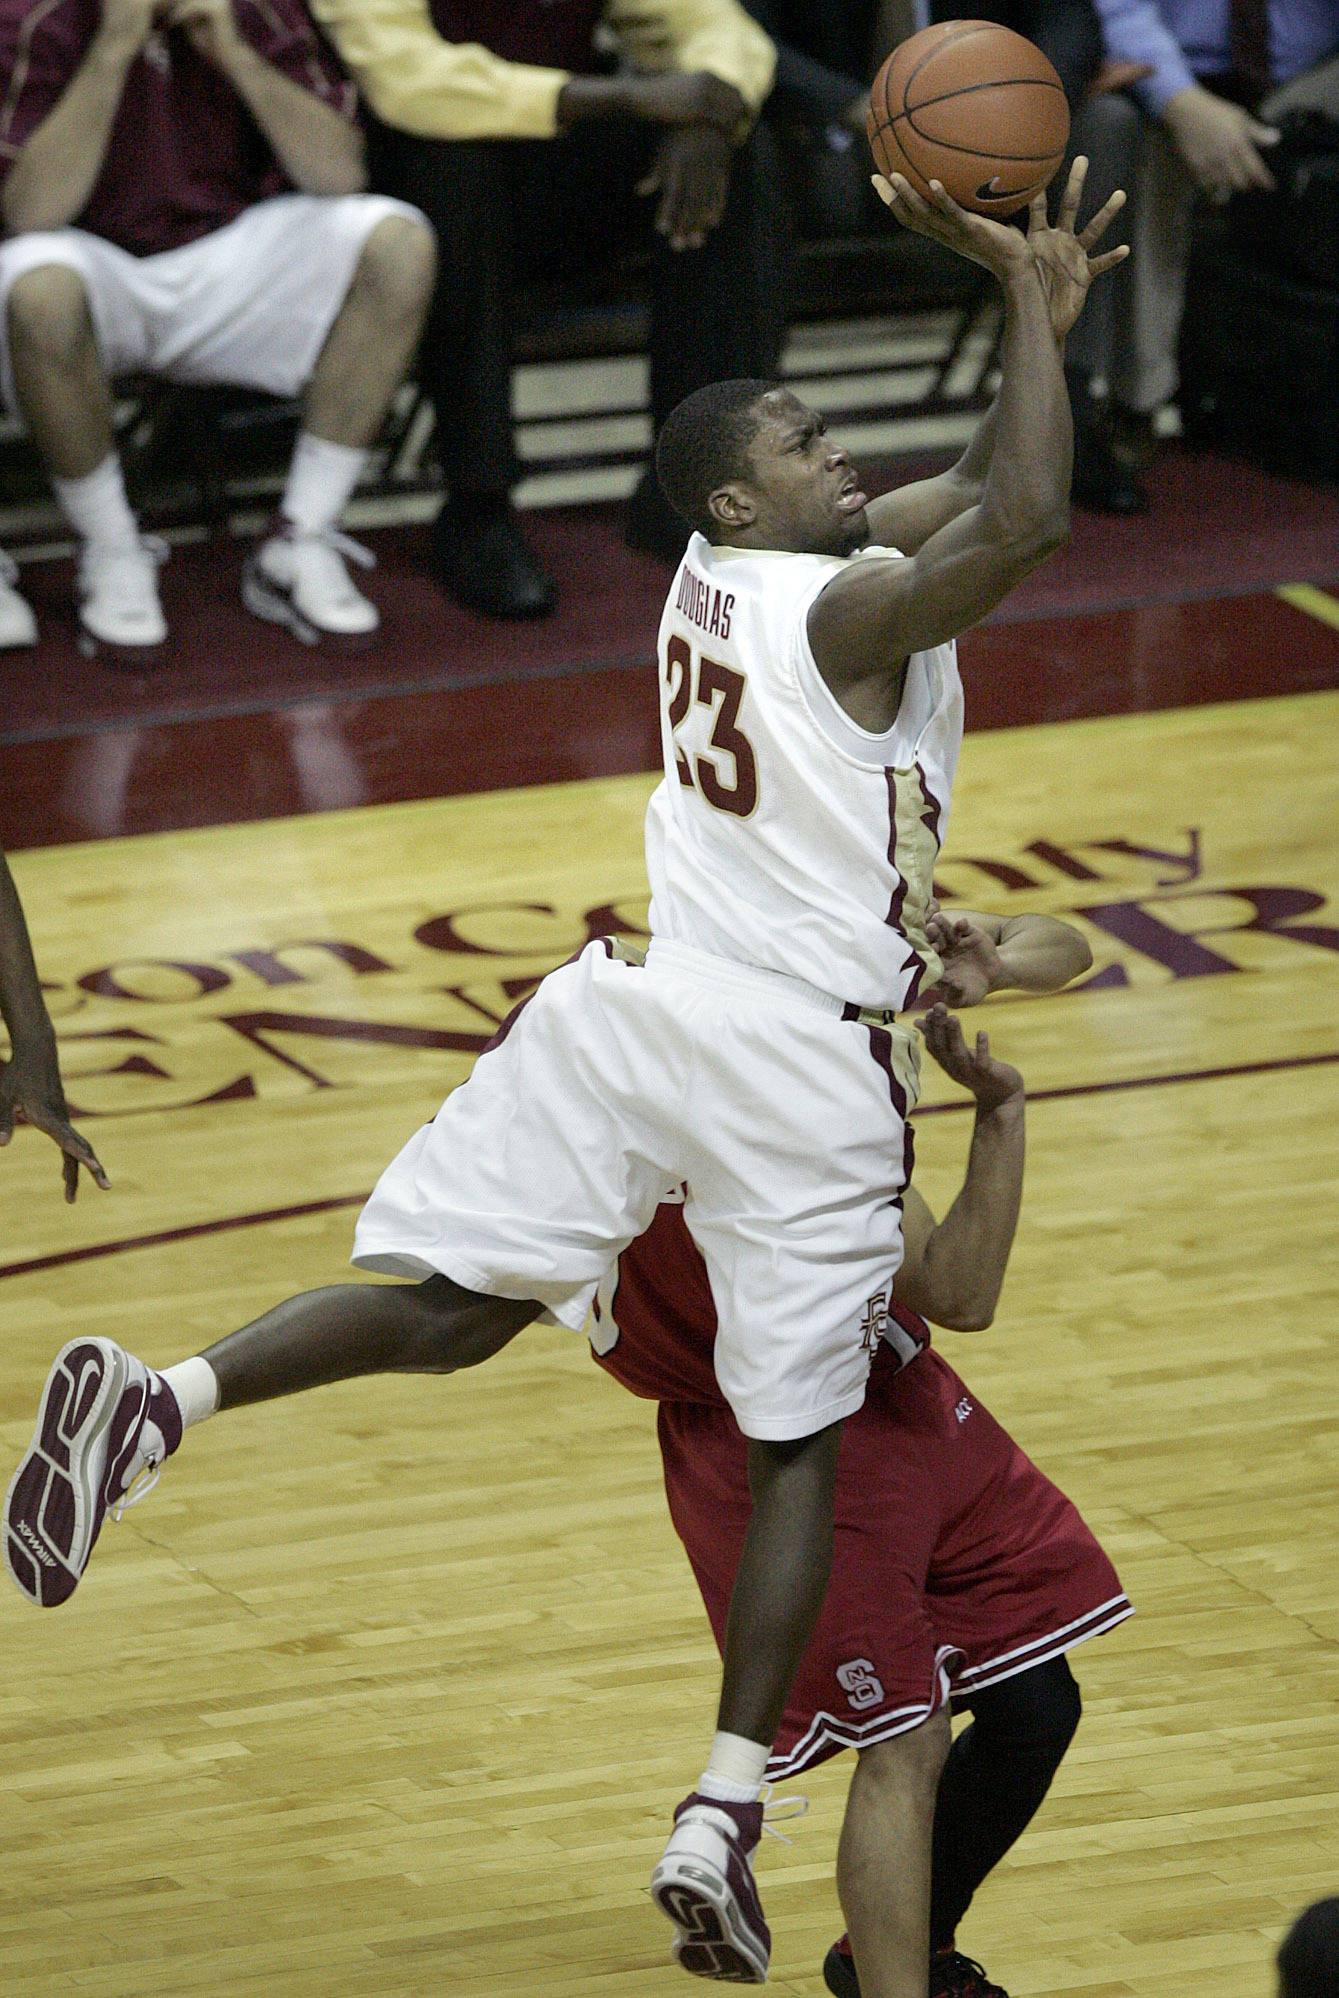 Florida State's Toney Douglas shoots in the 69-66 loss against North Carolina State, 69-66 in a basketball game on Saturday, Jan. 26, 2008 in Tallahassee, Fla.